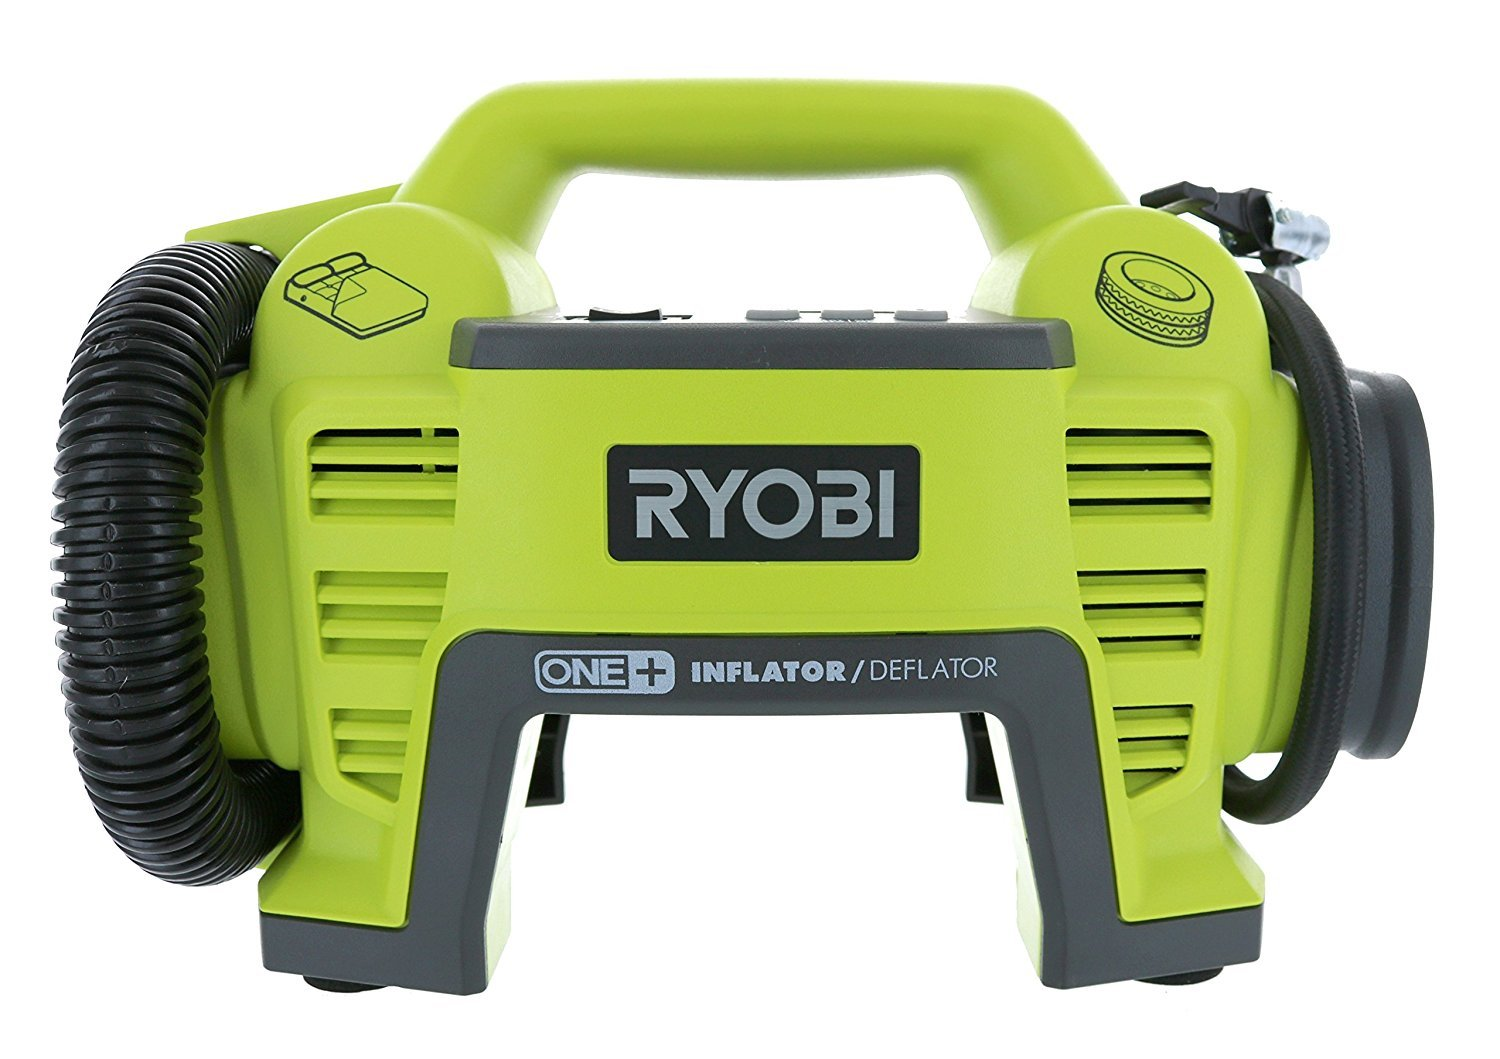 Ryobi P731 One+ 18v Dual Function Power Inflator/Deflator Cordless Air Compressor Kit w/ Adapters (Battery Not Included, Tool Only) by Ryobi